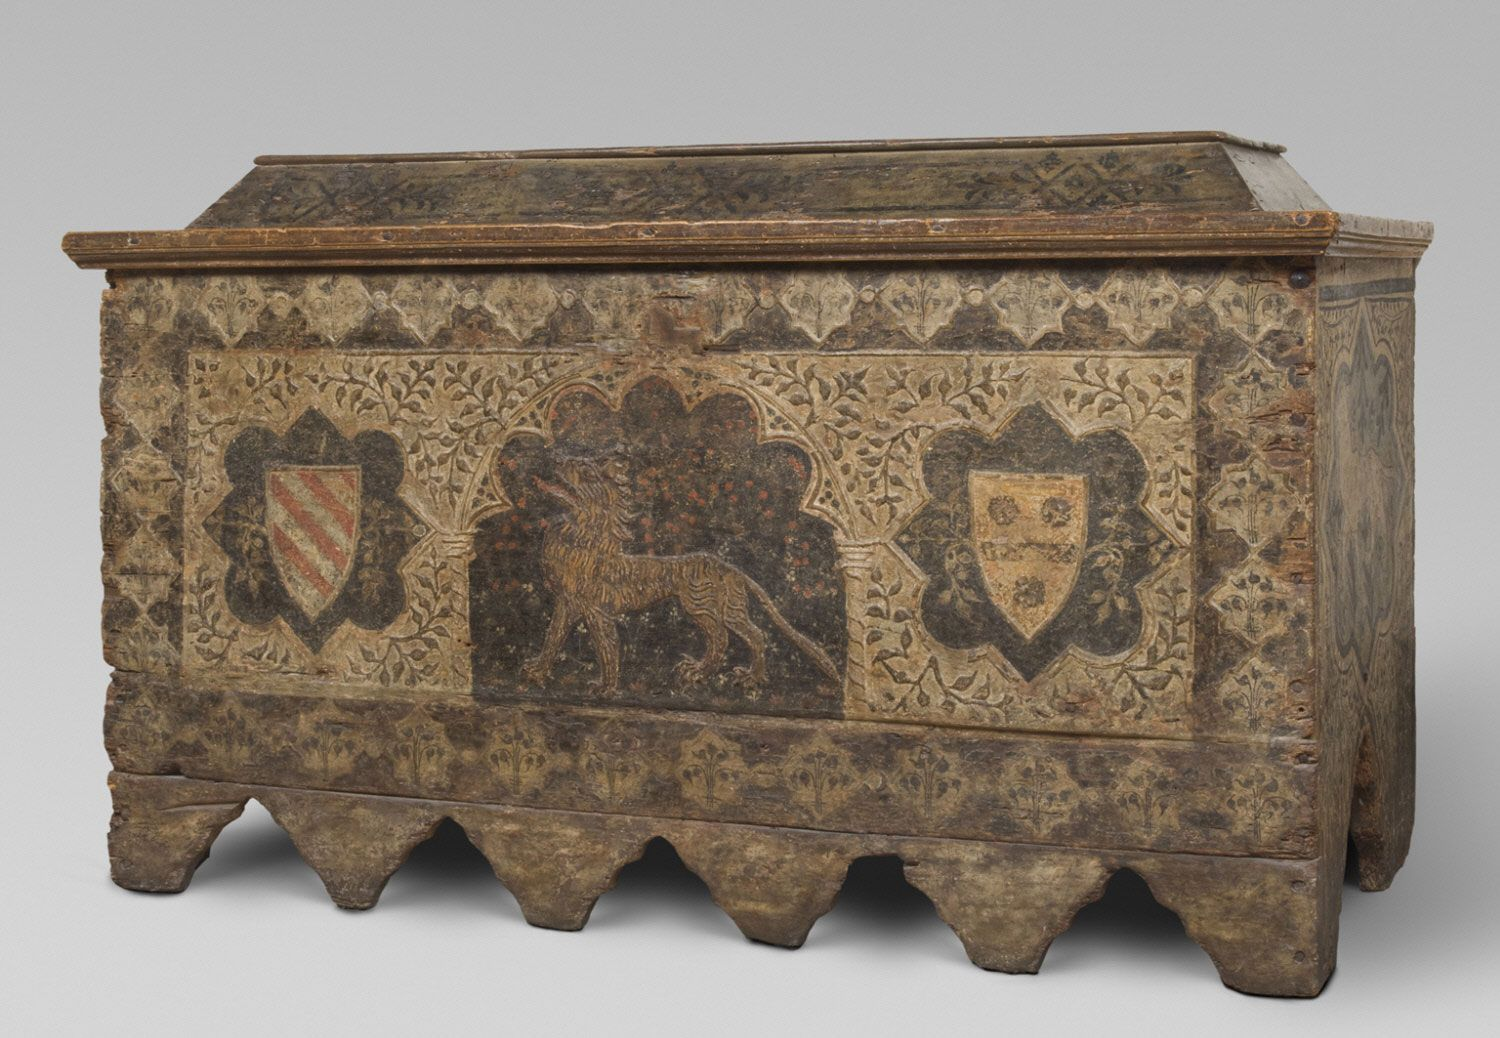 Chest Cassone Artist/maker unknown, Italian Geography: Possibly made in northern Italy, Italy, Europe Date: 1450-1490 Medium: Poplar and plaster reliefs with painted decoration Dimensions: 39 x 63 x 24 7/16 inches (99.1 x 160 x 62.1 cm)